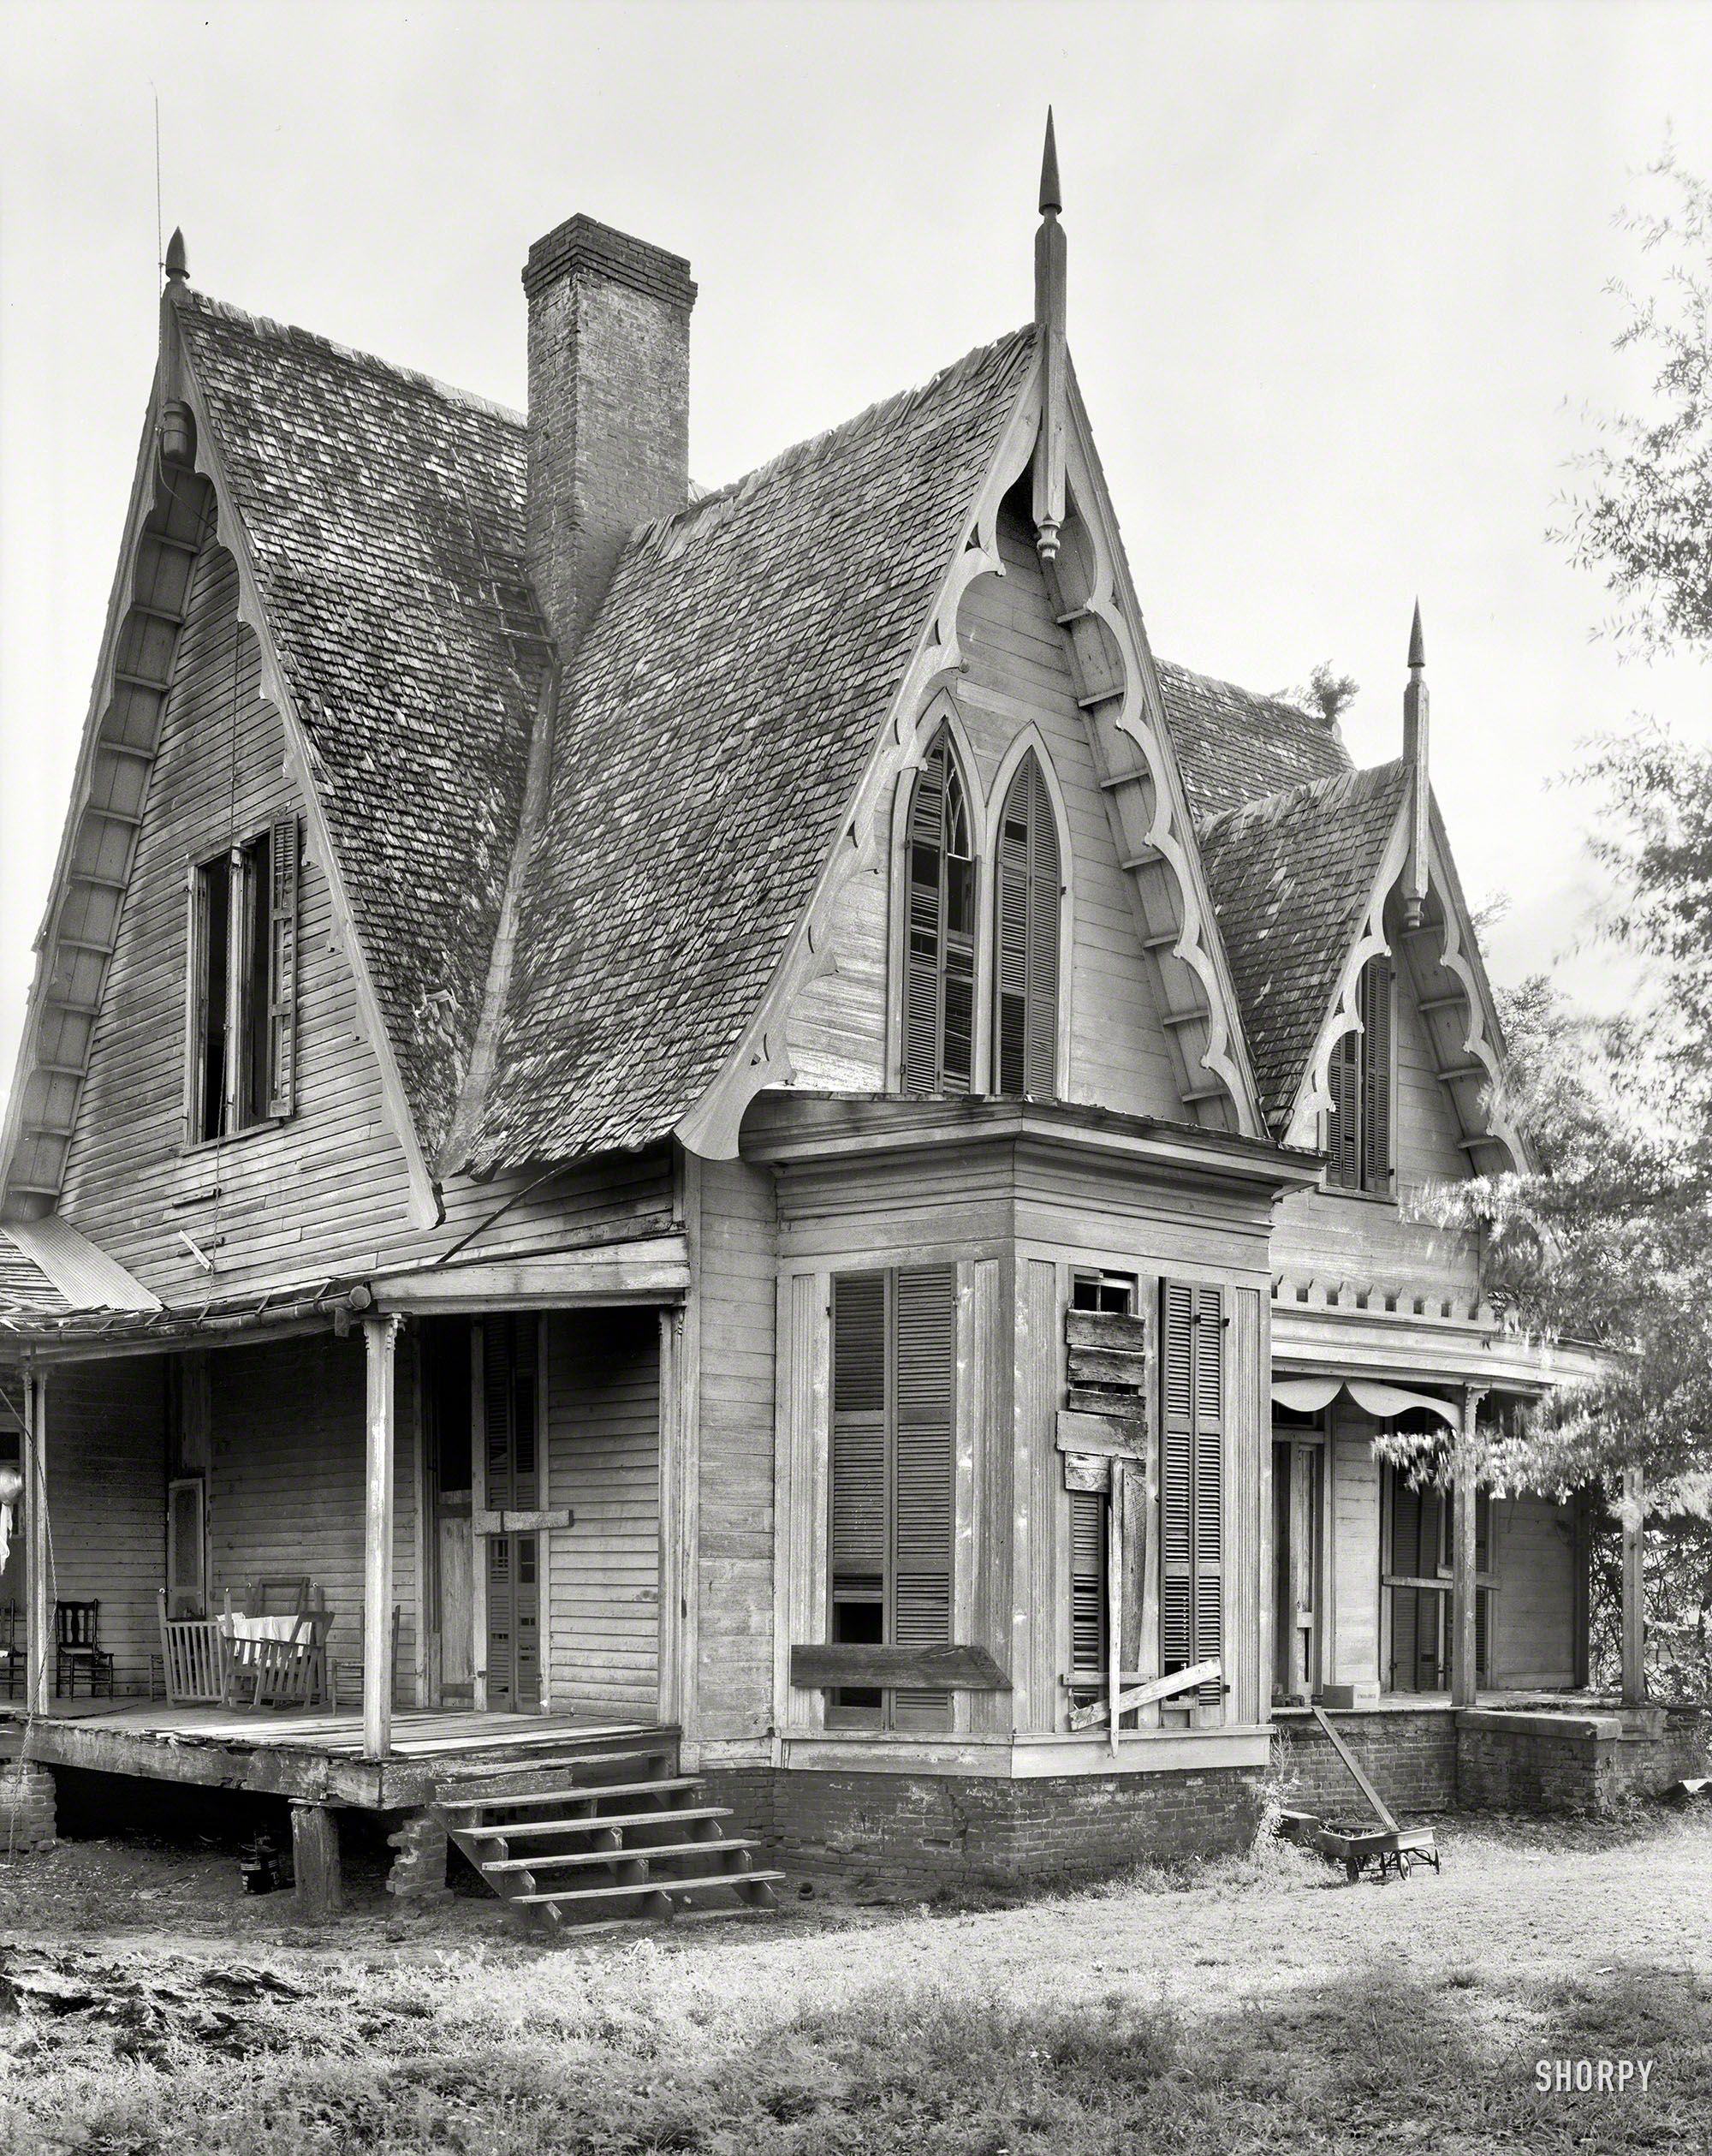 Shorpy historical photo archive 1939 knight house for Gothic revival home